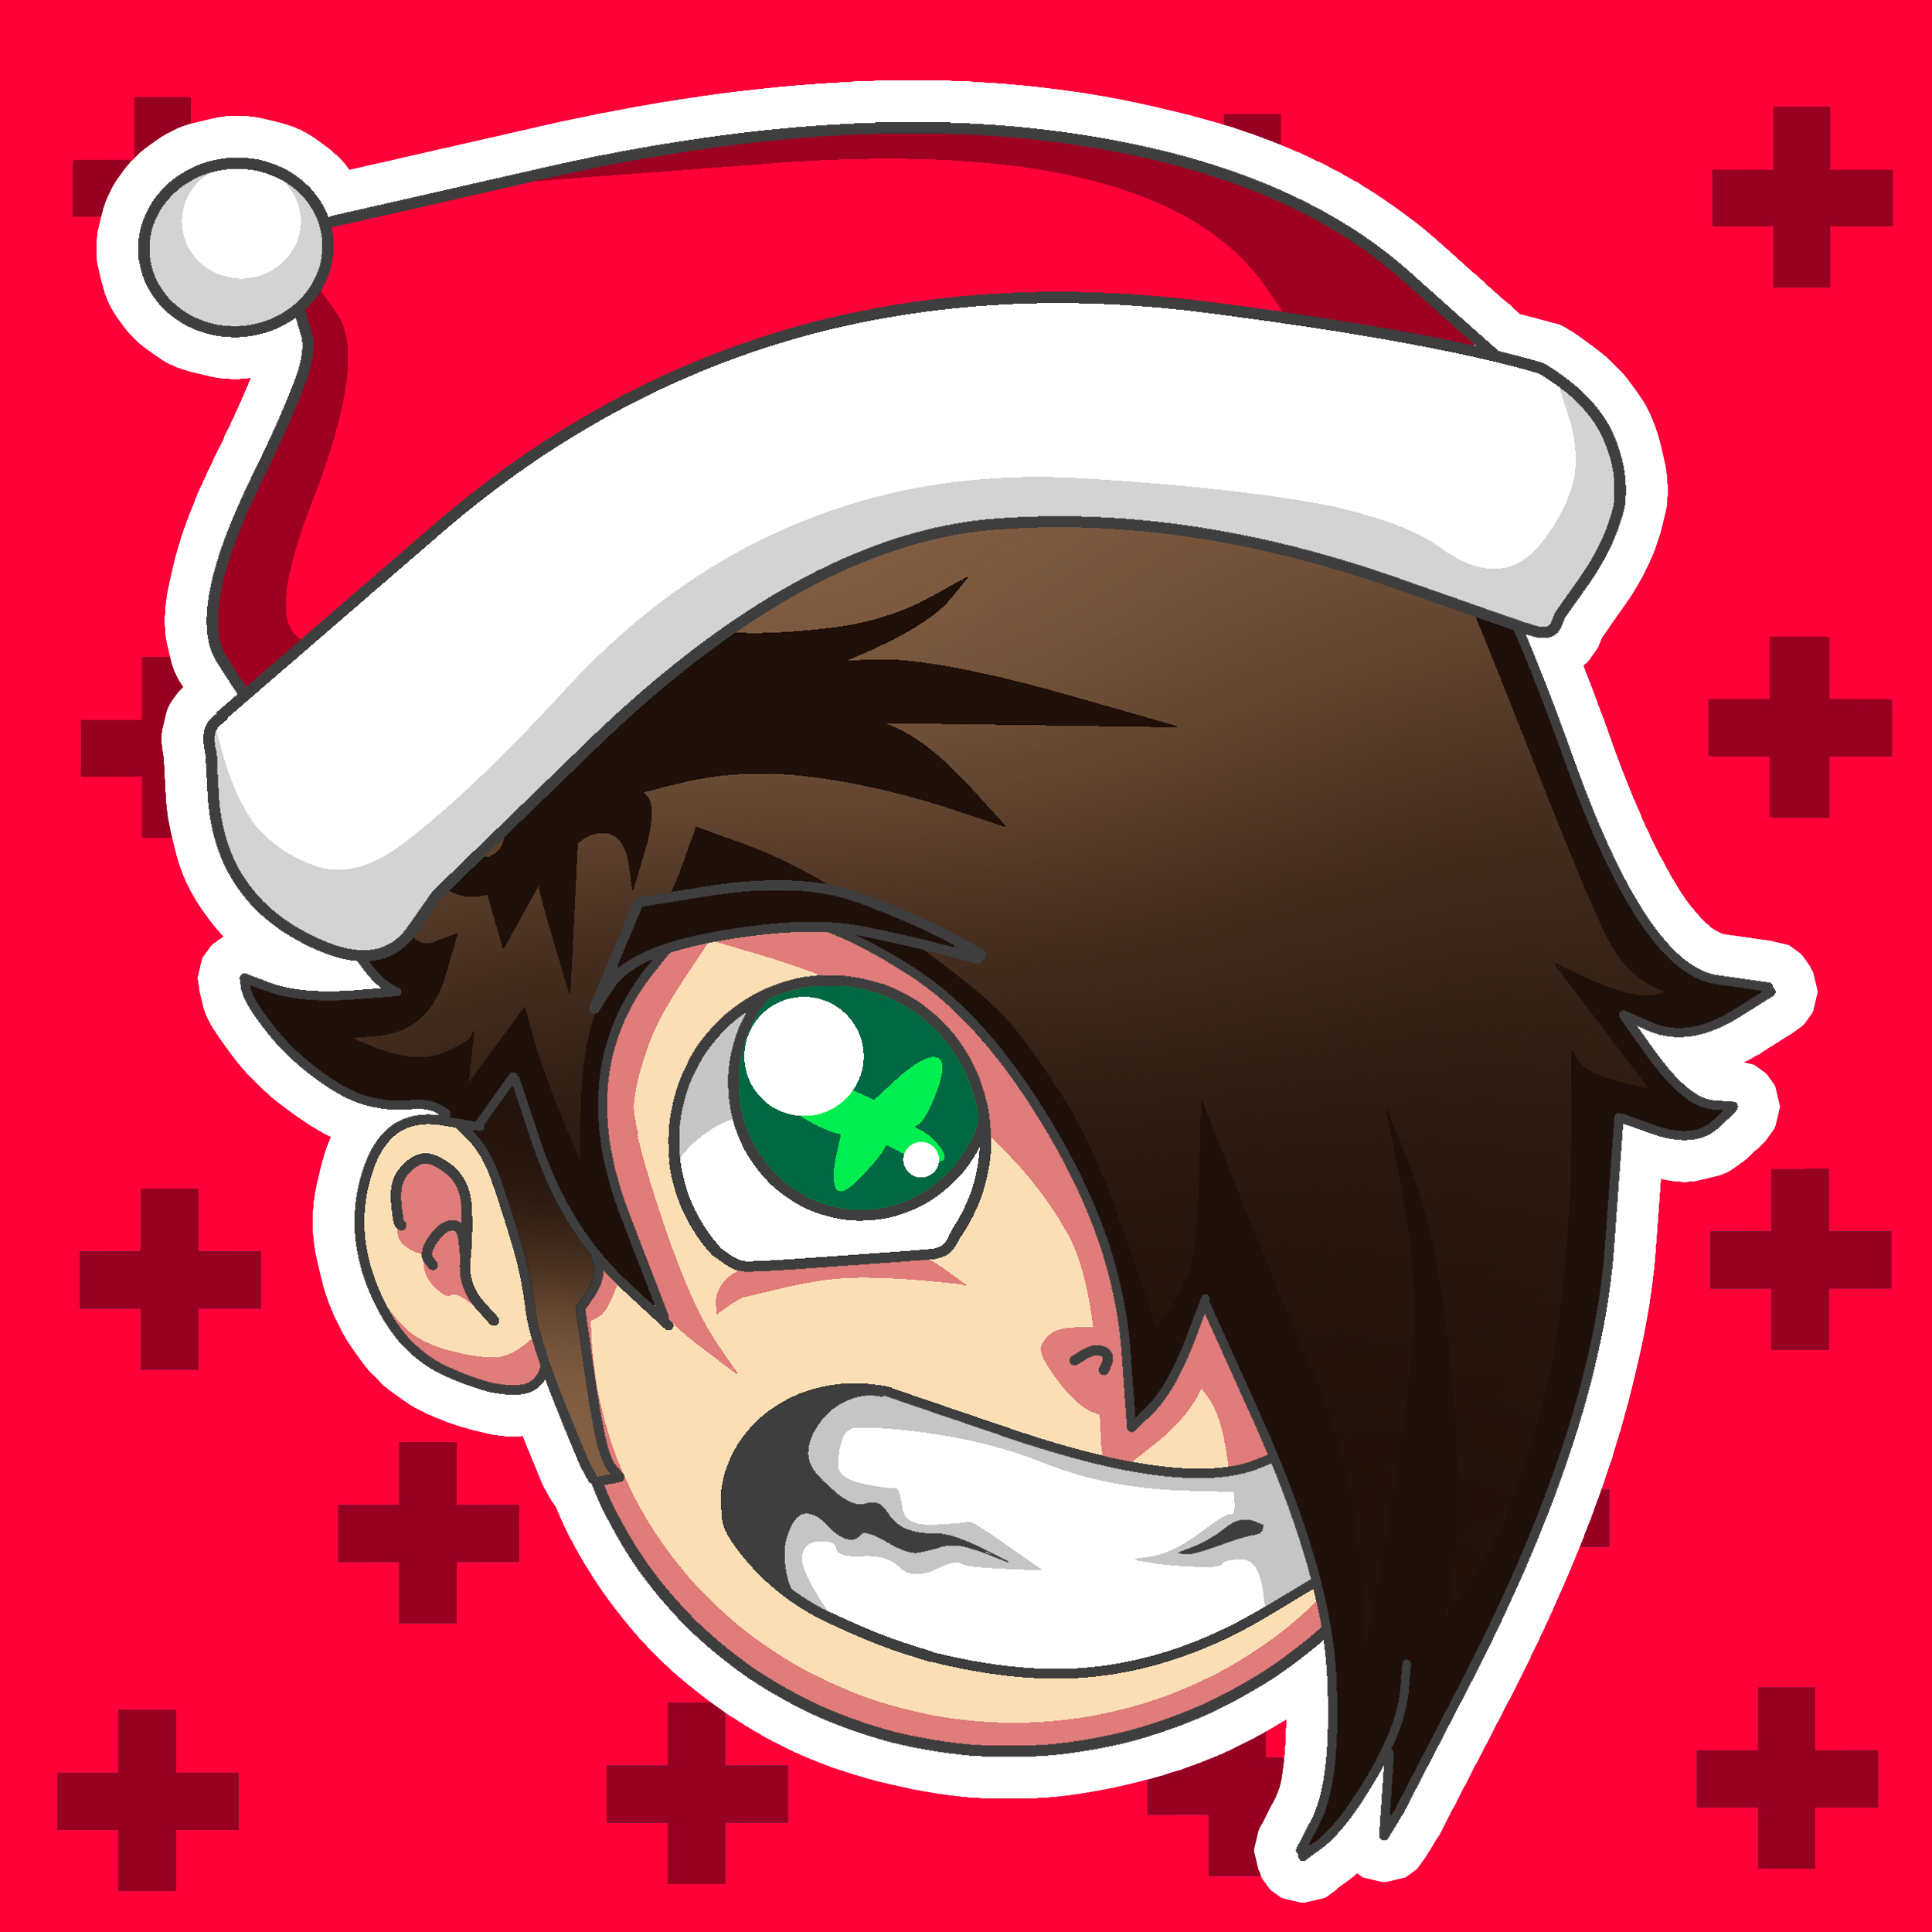 Avatar Youtube Navidad Happy By NaacTheStory On DeviantArt